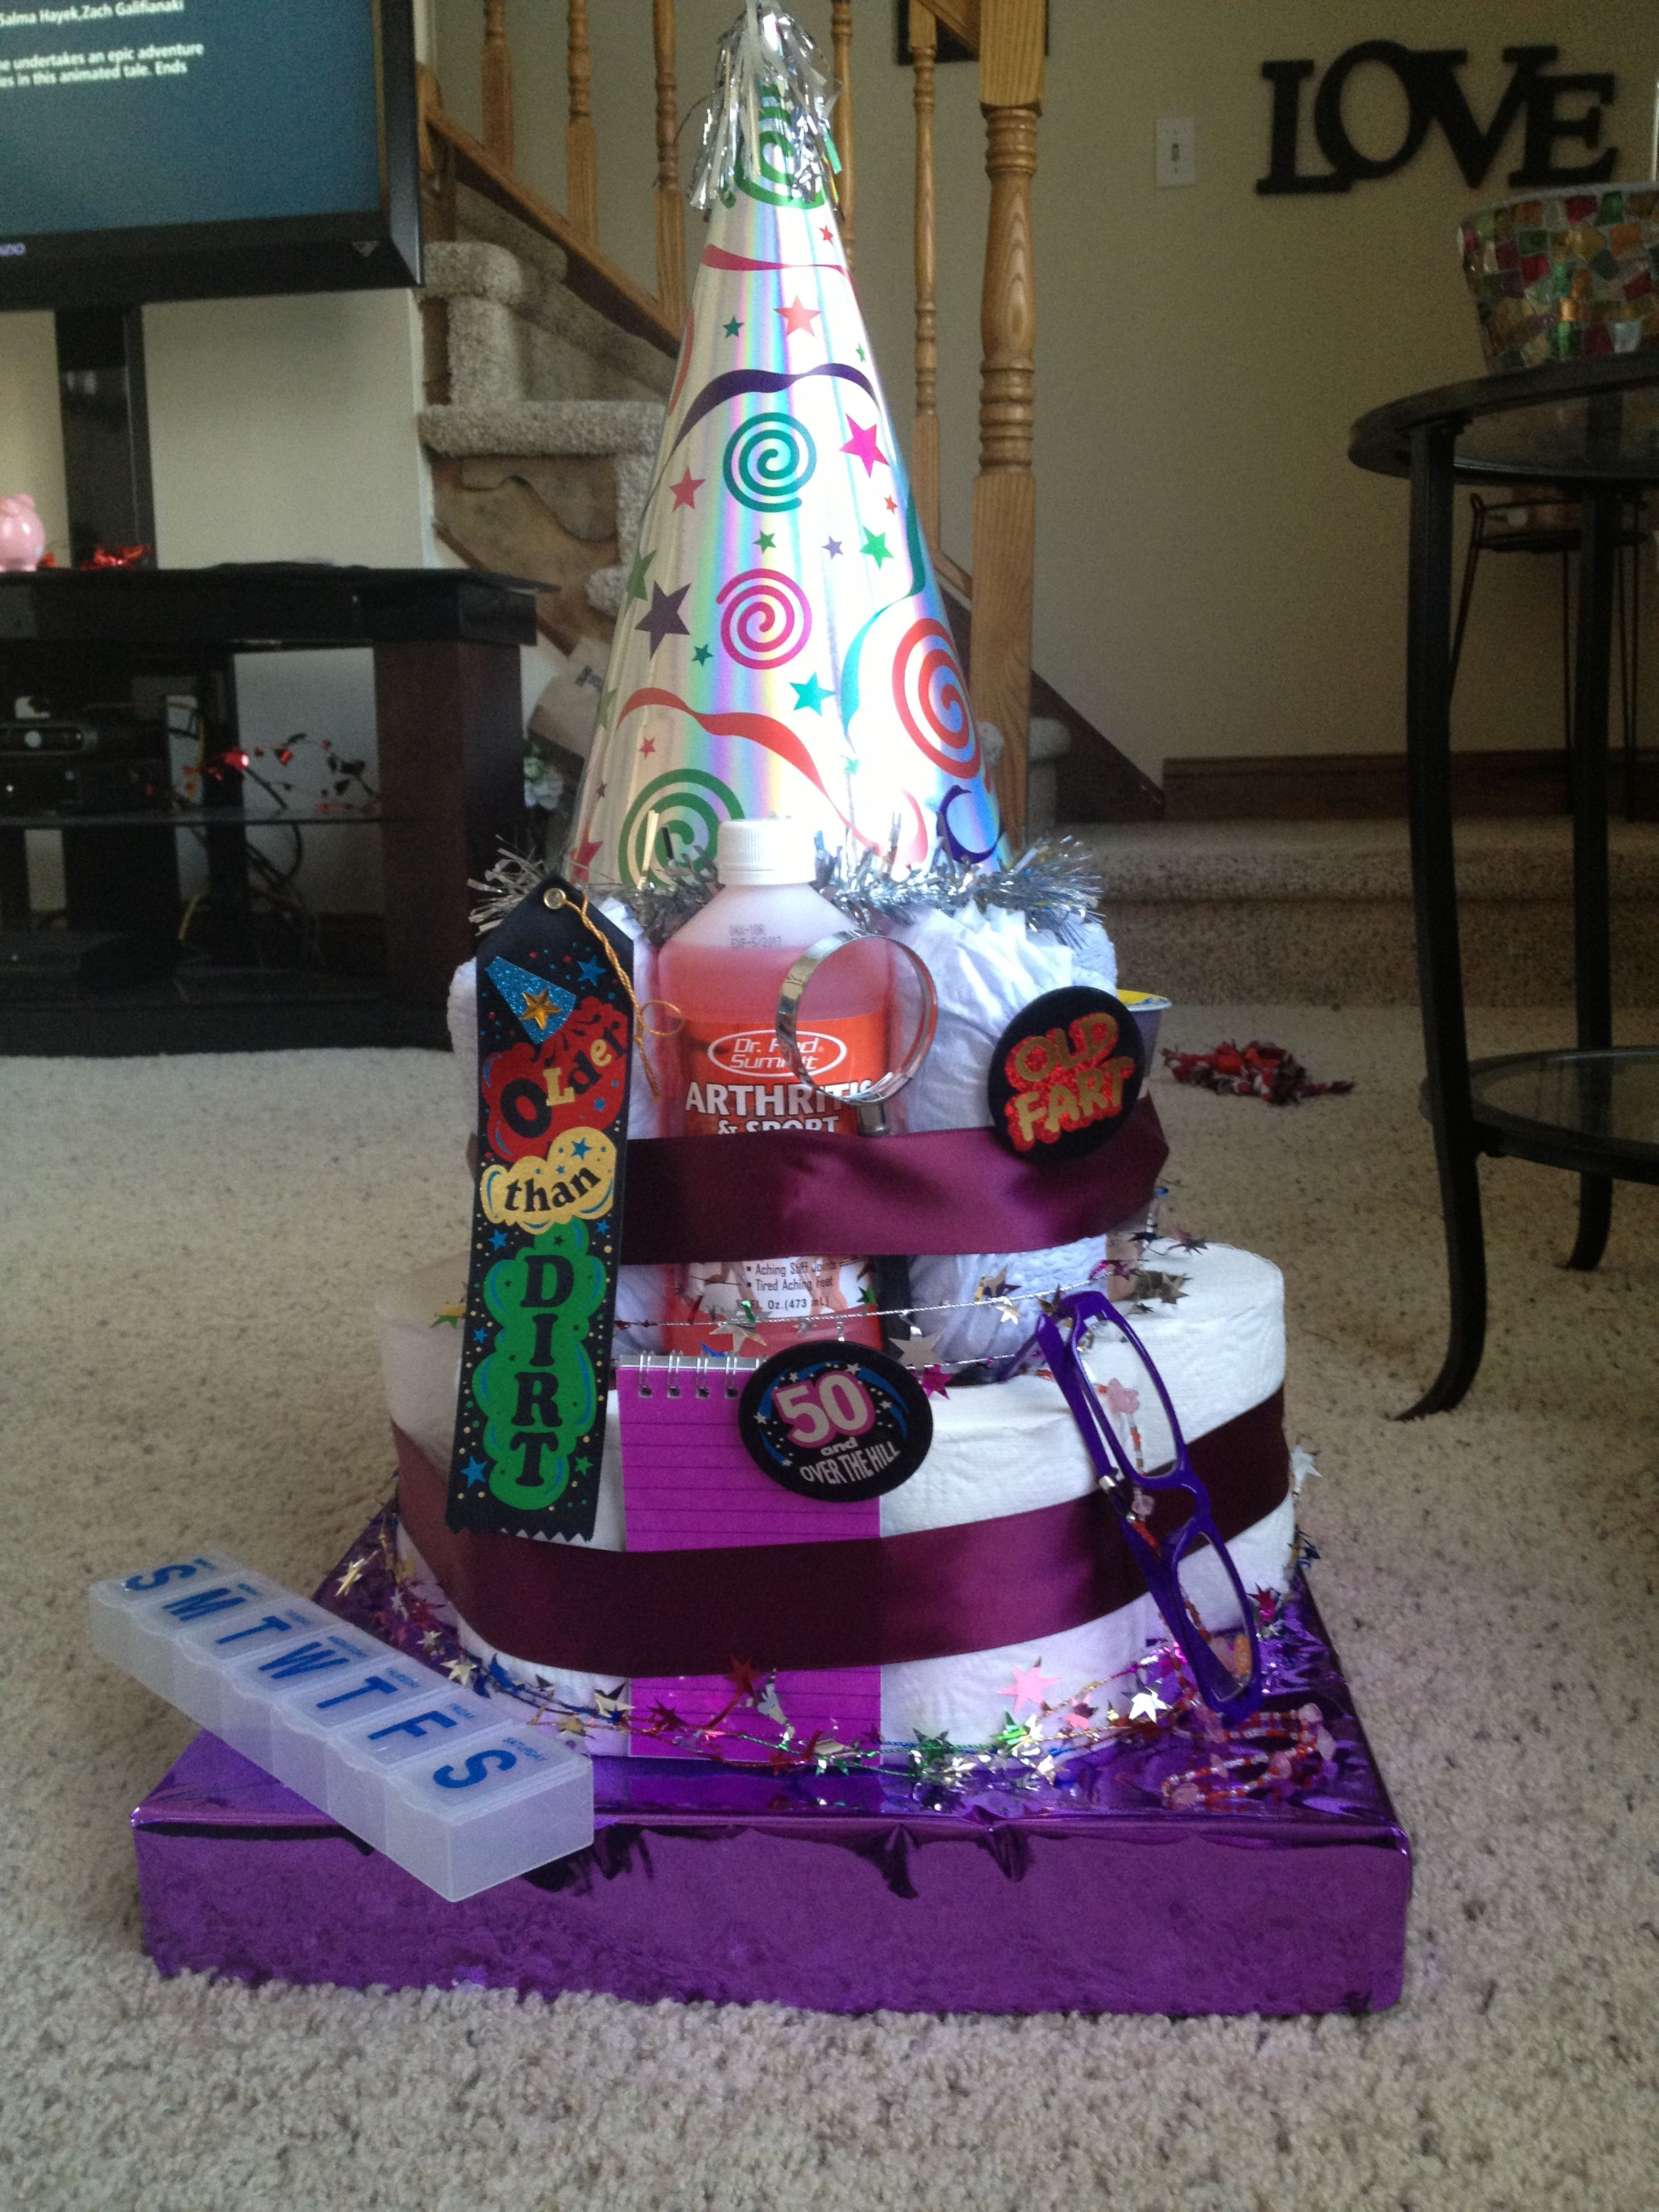 50th Birthday Diaper cake! Dollar store items, adult diapers, toilet paper rolls and paper towel roll in the middle on top of a box wrapped in wrapping paper.